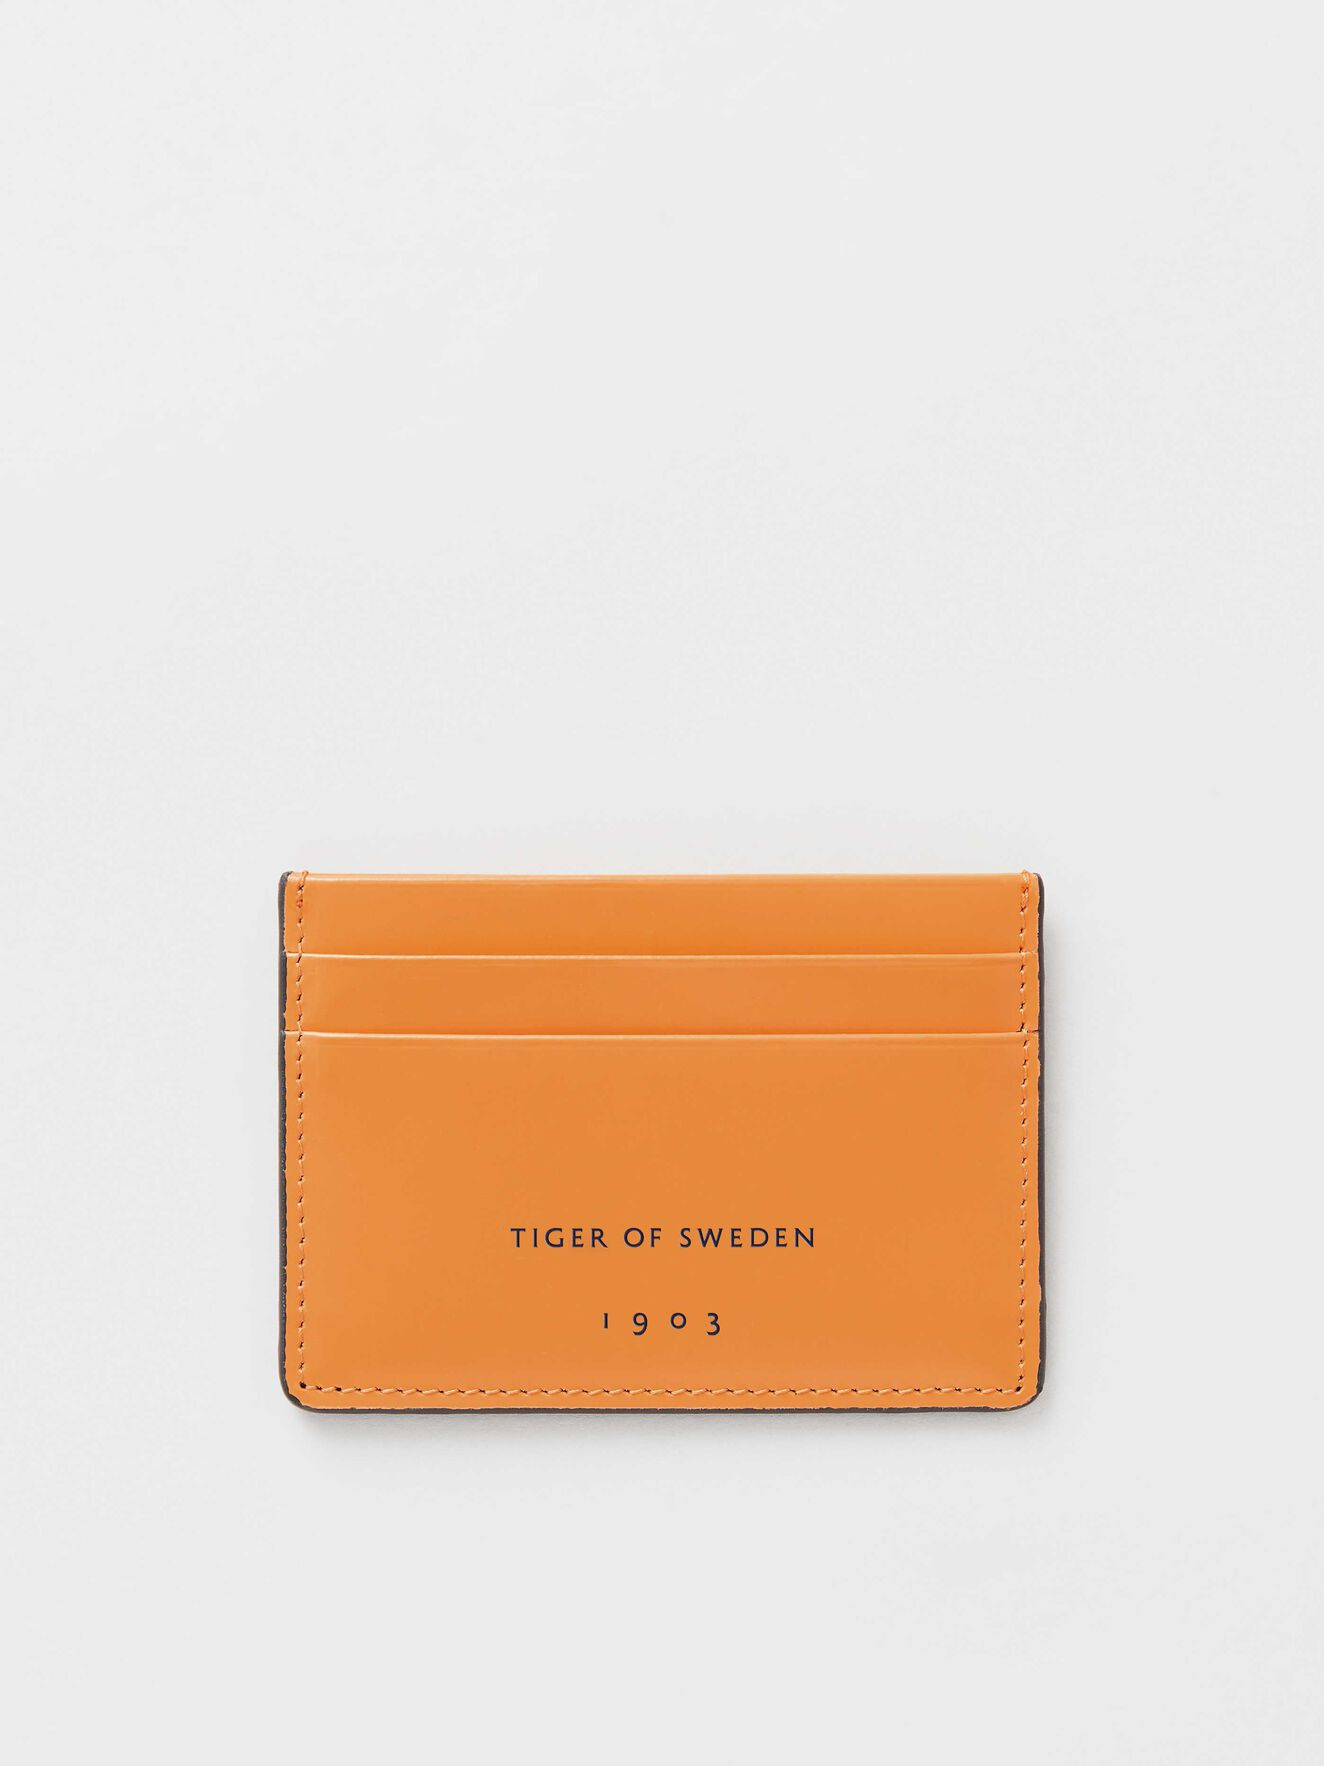 66163d5030d Wone Cardholder in Orange sorbet from Tiger of Sweden